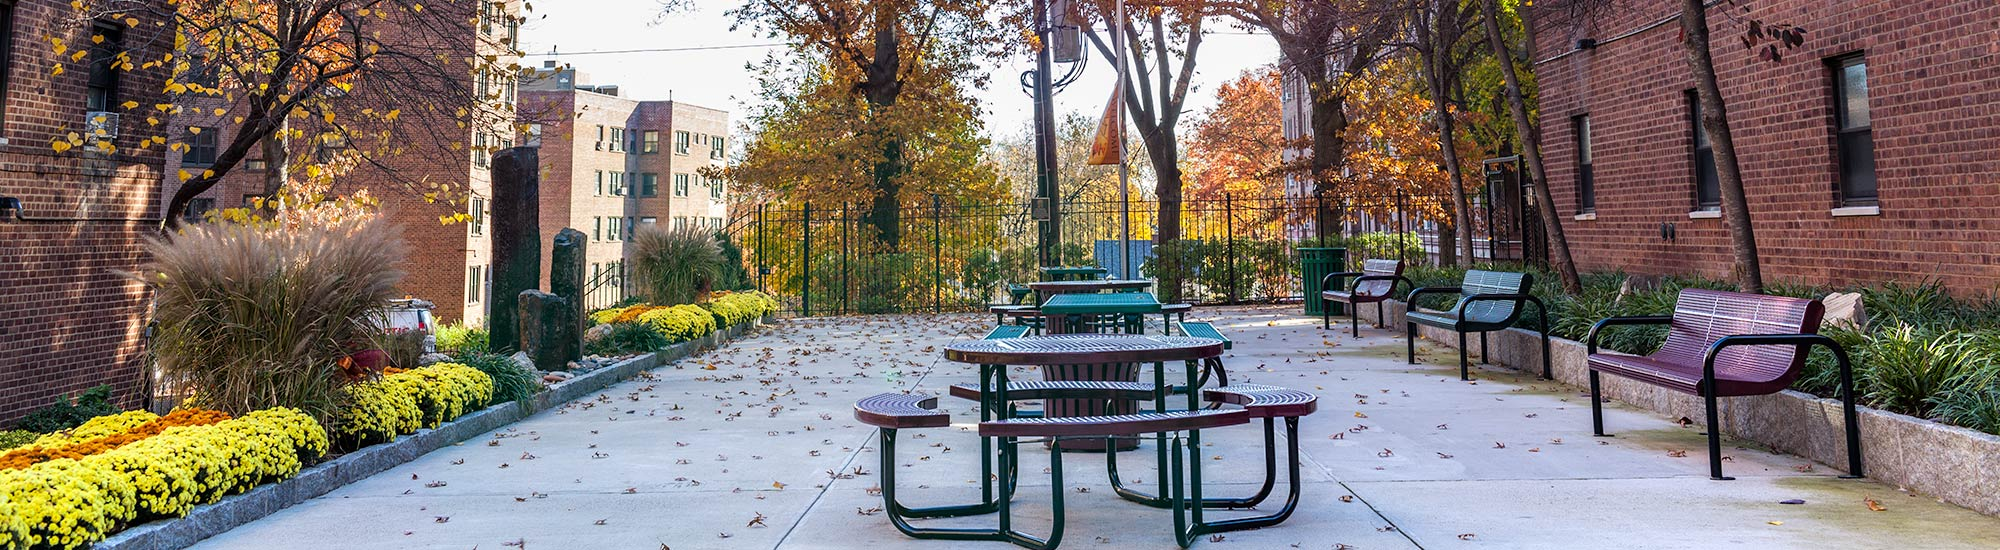 The courtyards and picnic area at Vernon Manor Section II